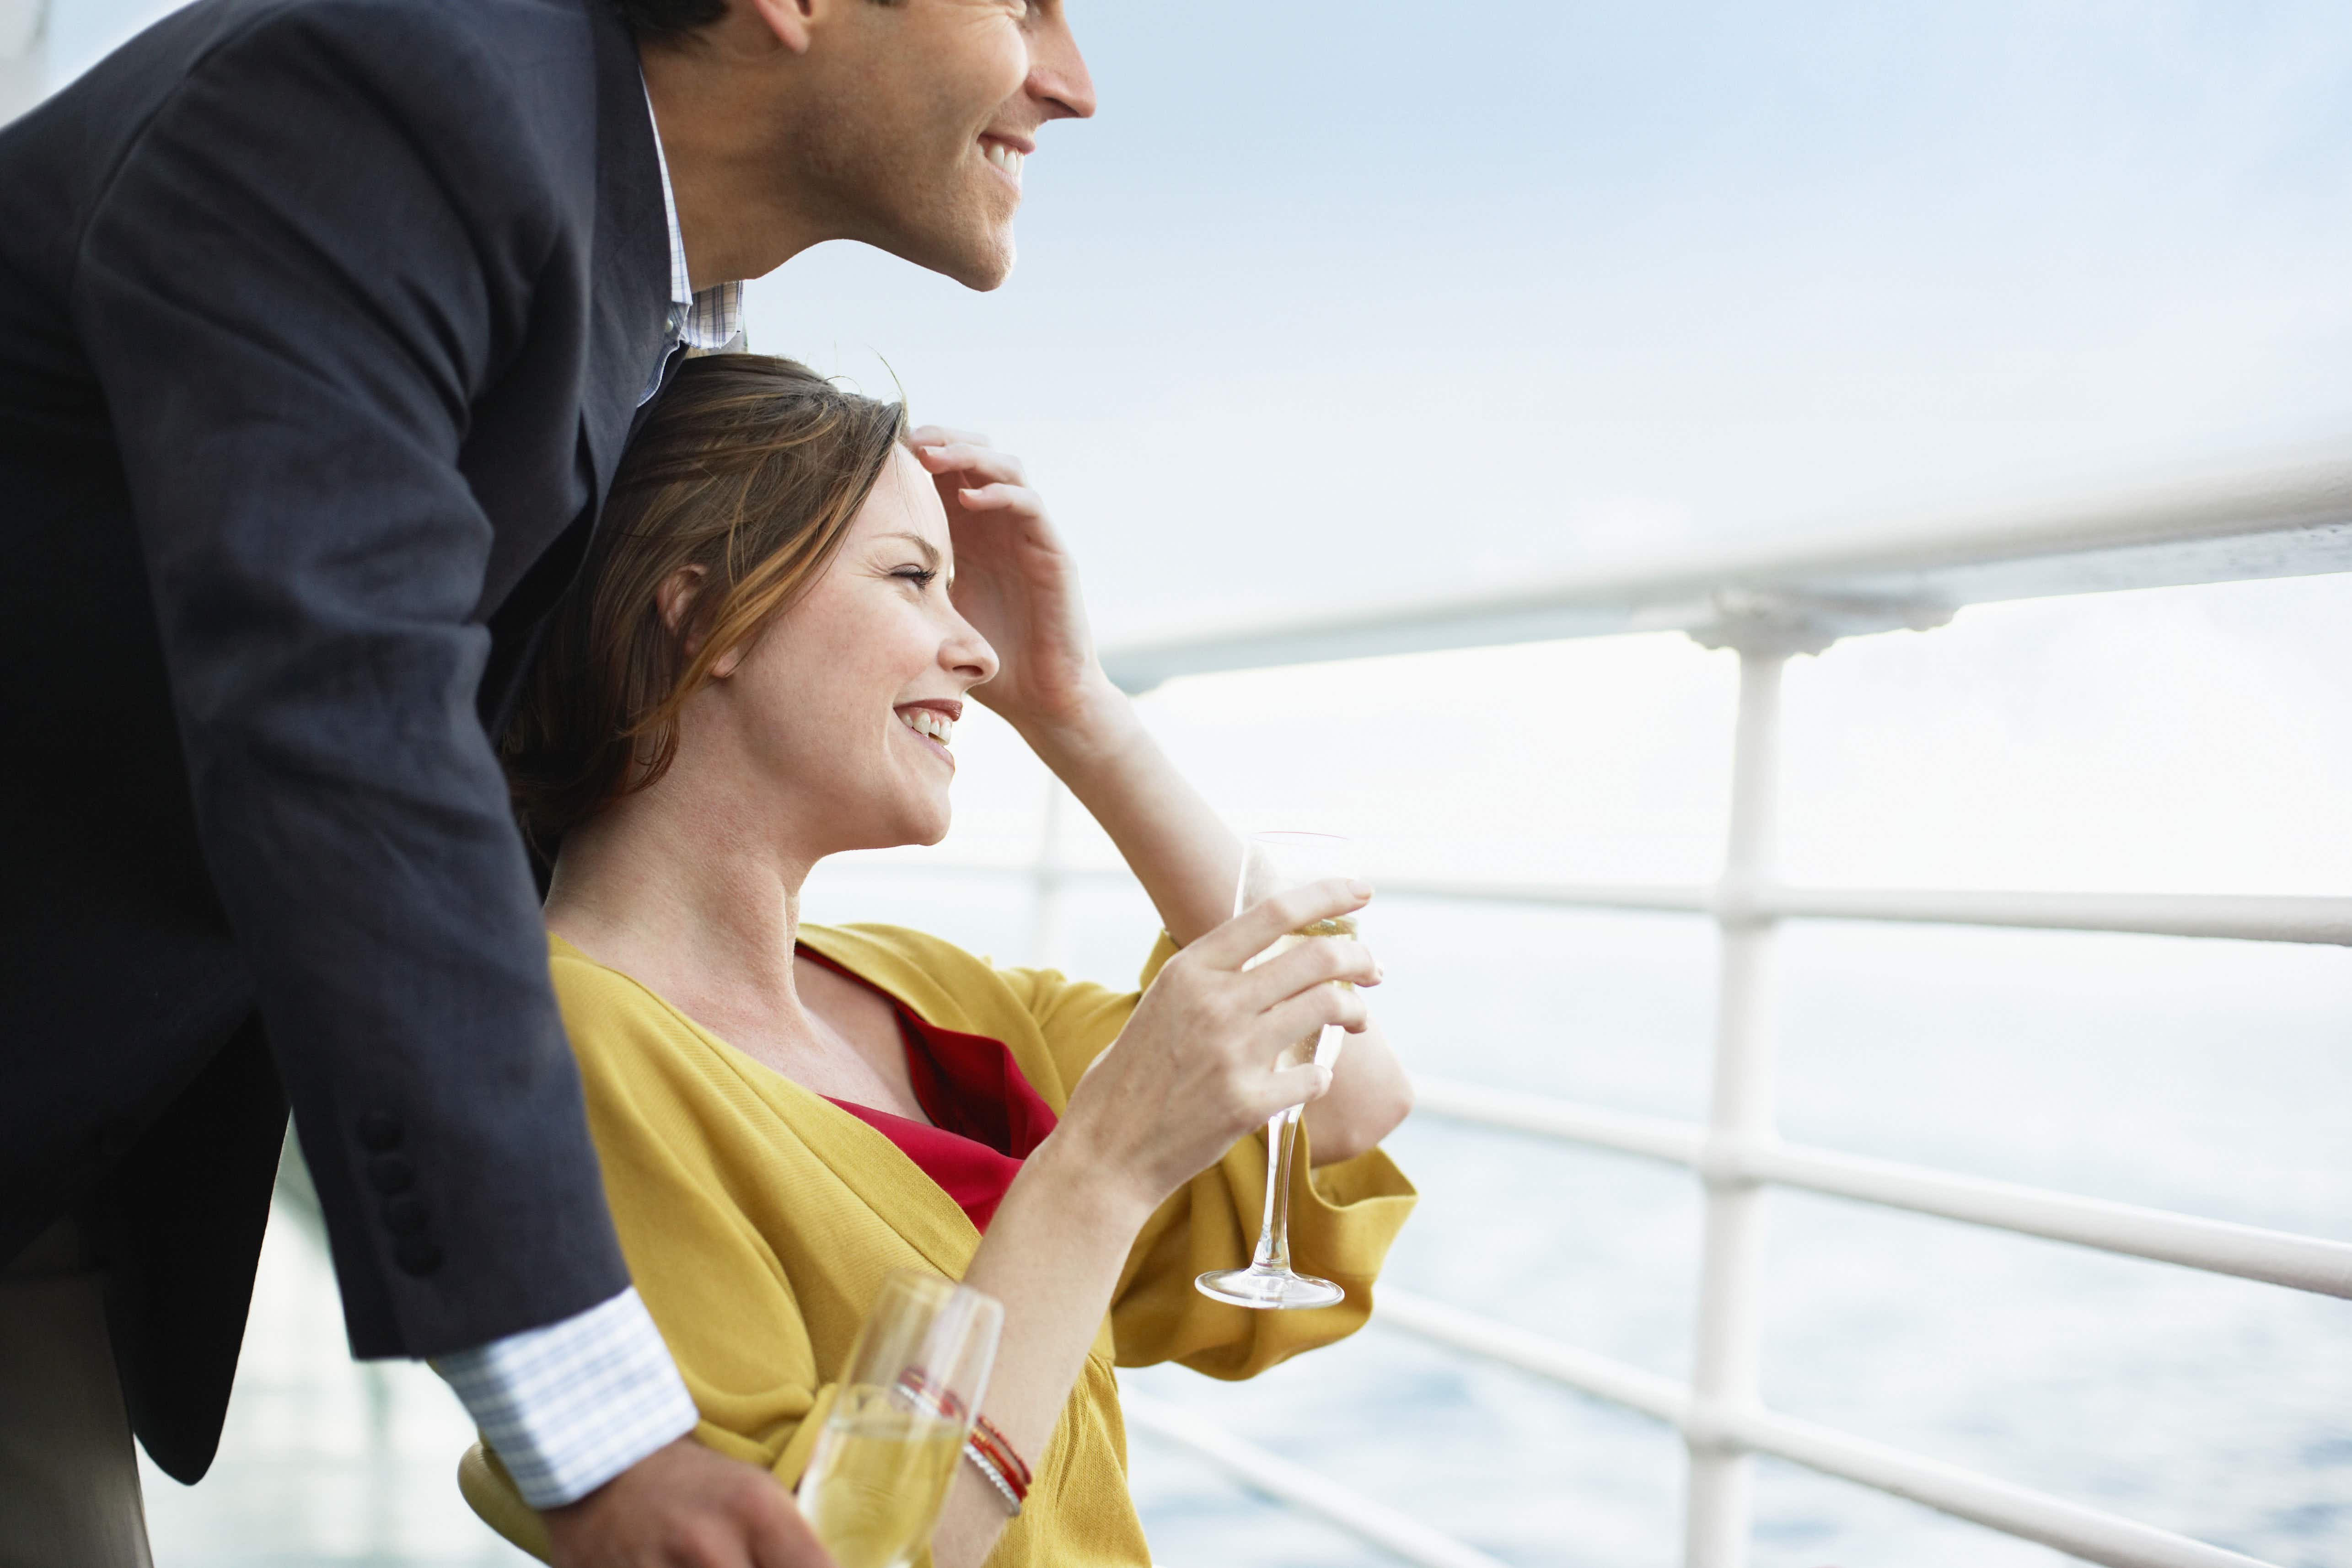 Learn about wine as you cruise on board Norwegian's Meet the Winemaker sailings